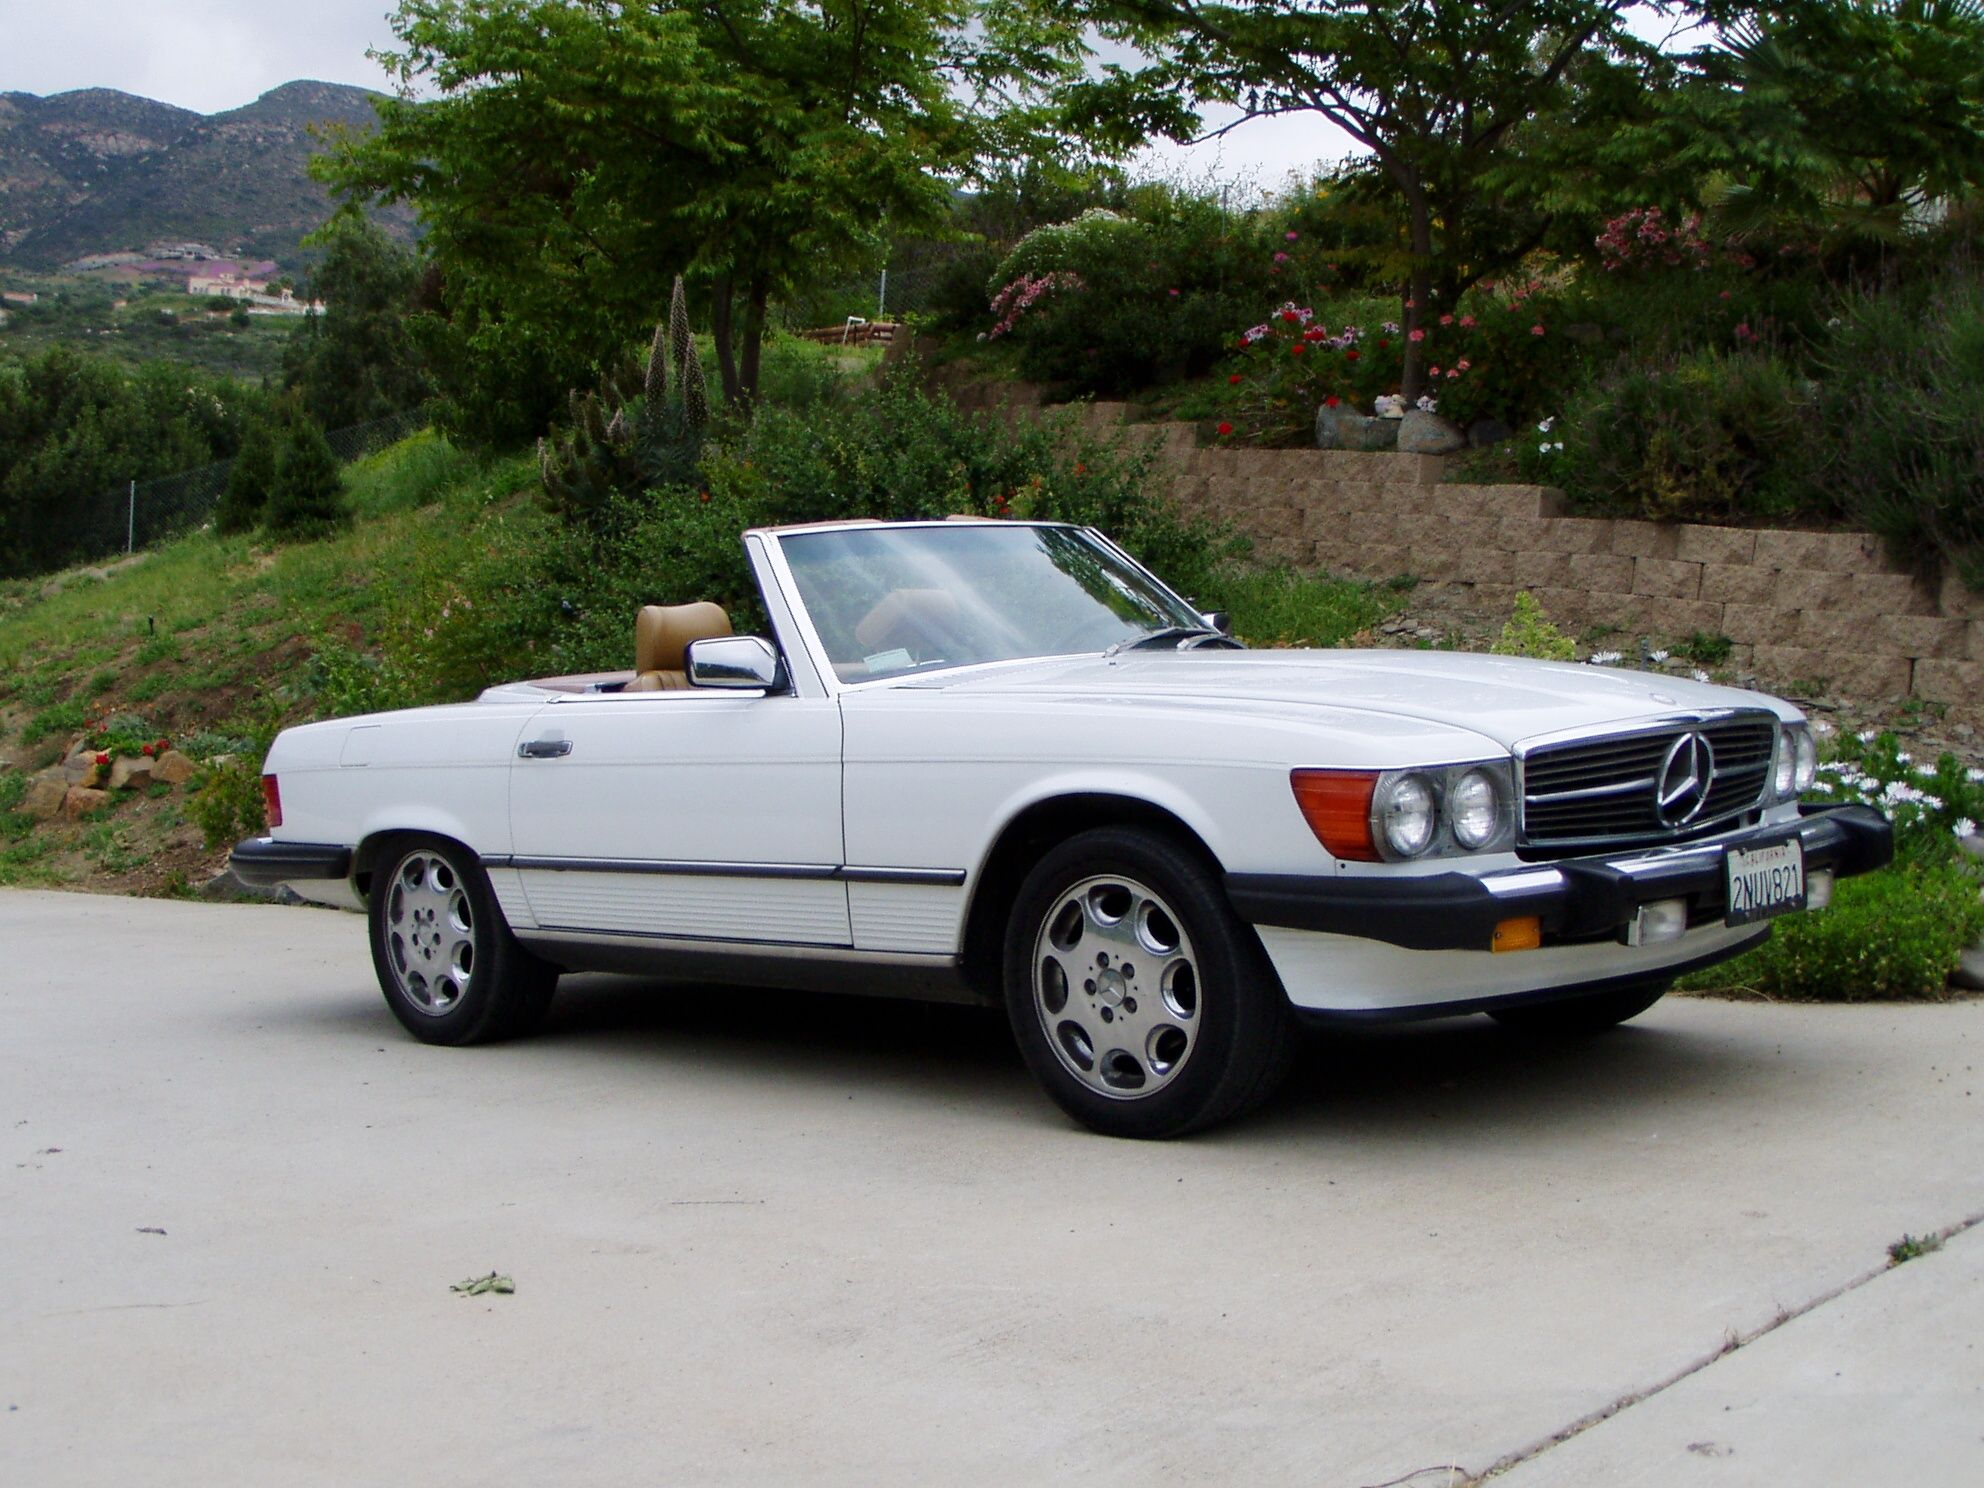 White 1980s Mercedes Benz 560SL Convertible Cool Cars I